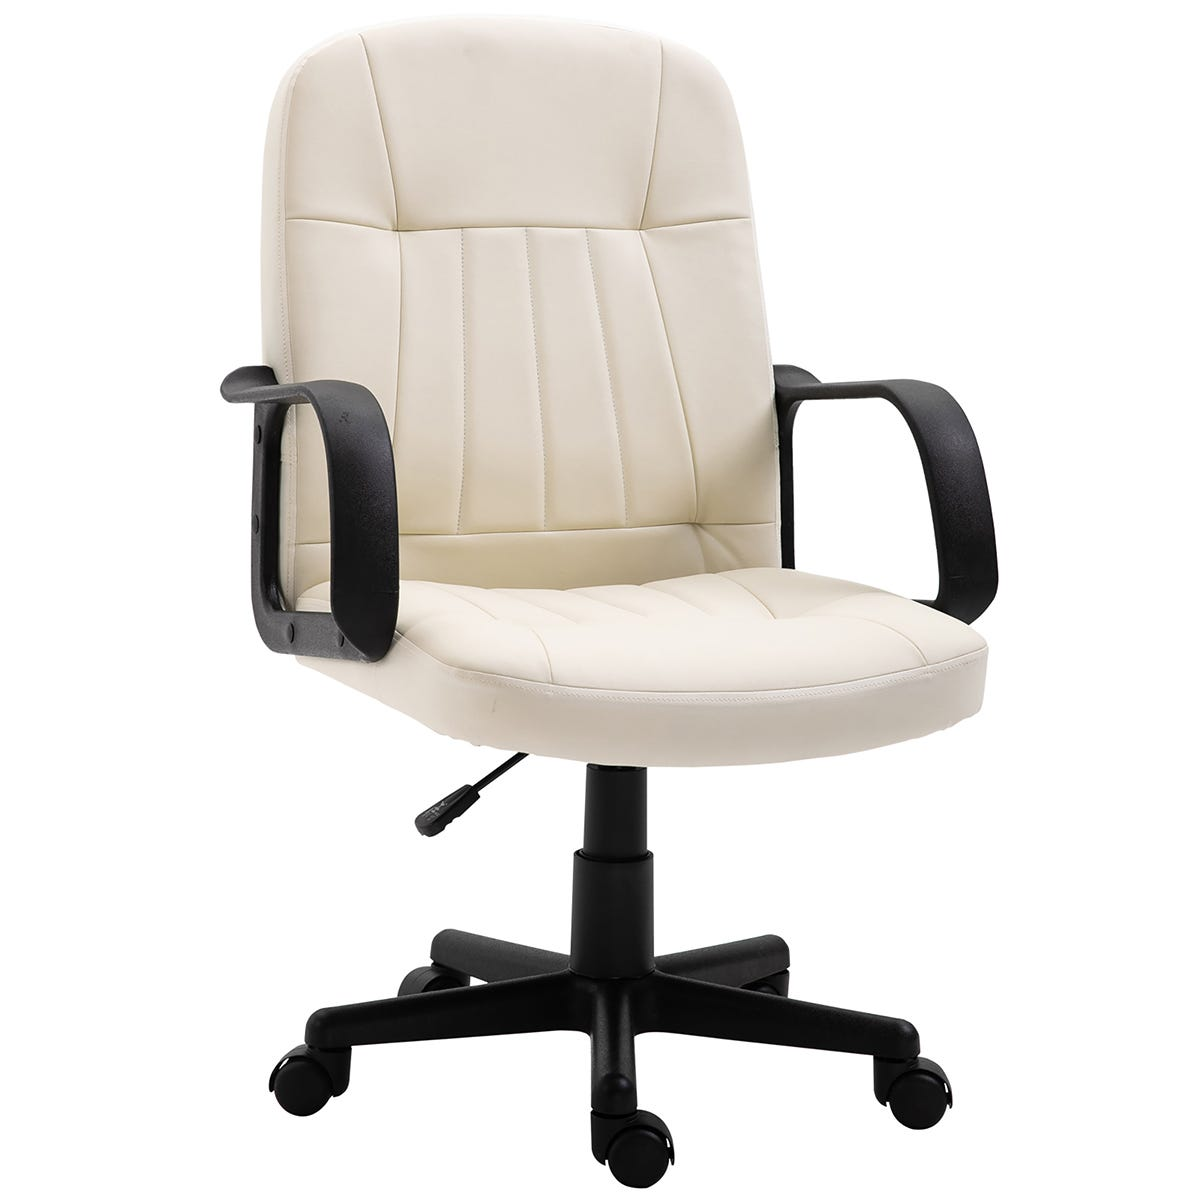 Zennor Mondo PU Leather Low Back Office Chair - Cream